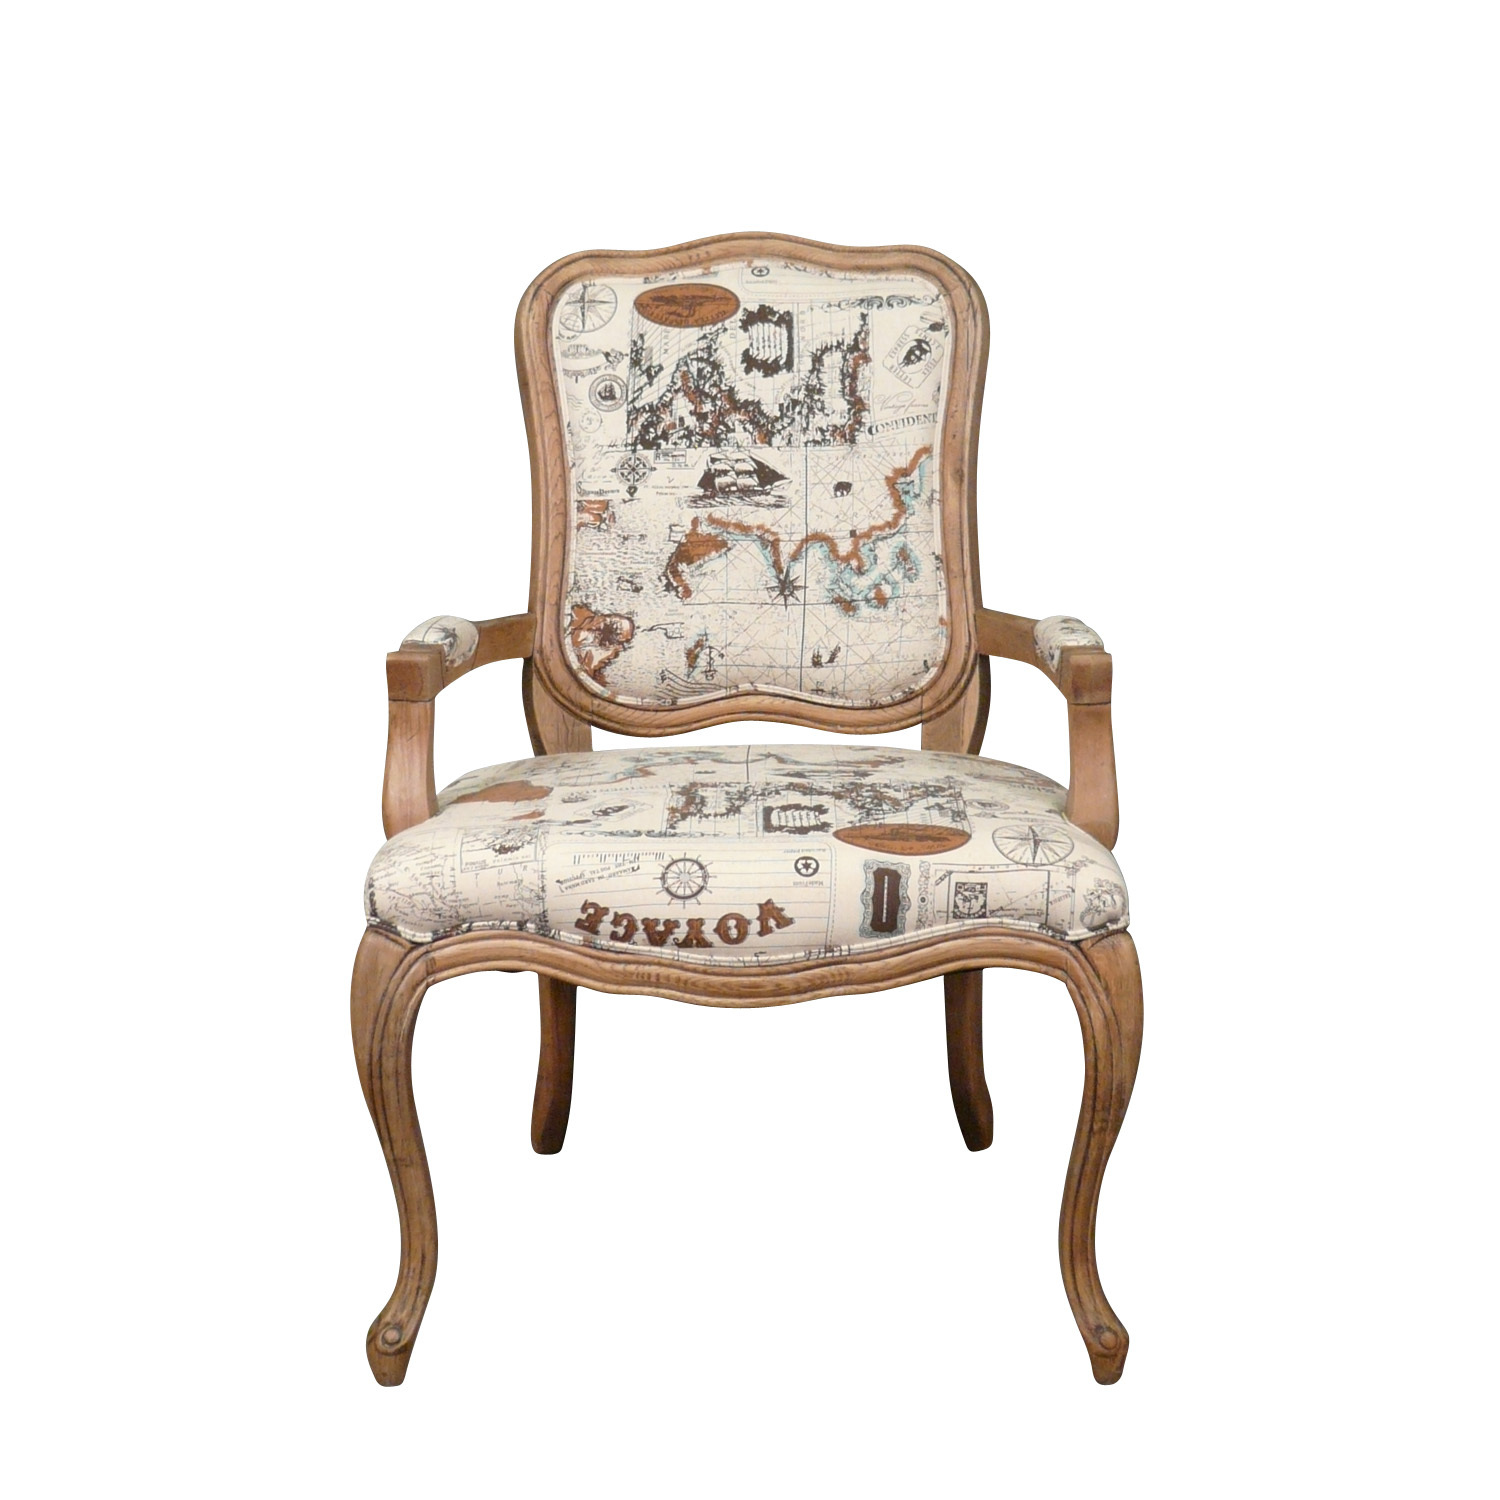 Louis Xv Armchair Photo Gallery Louis Xv Furniture